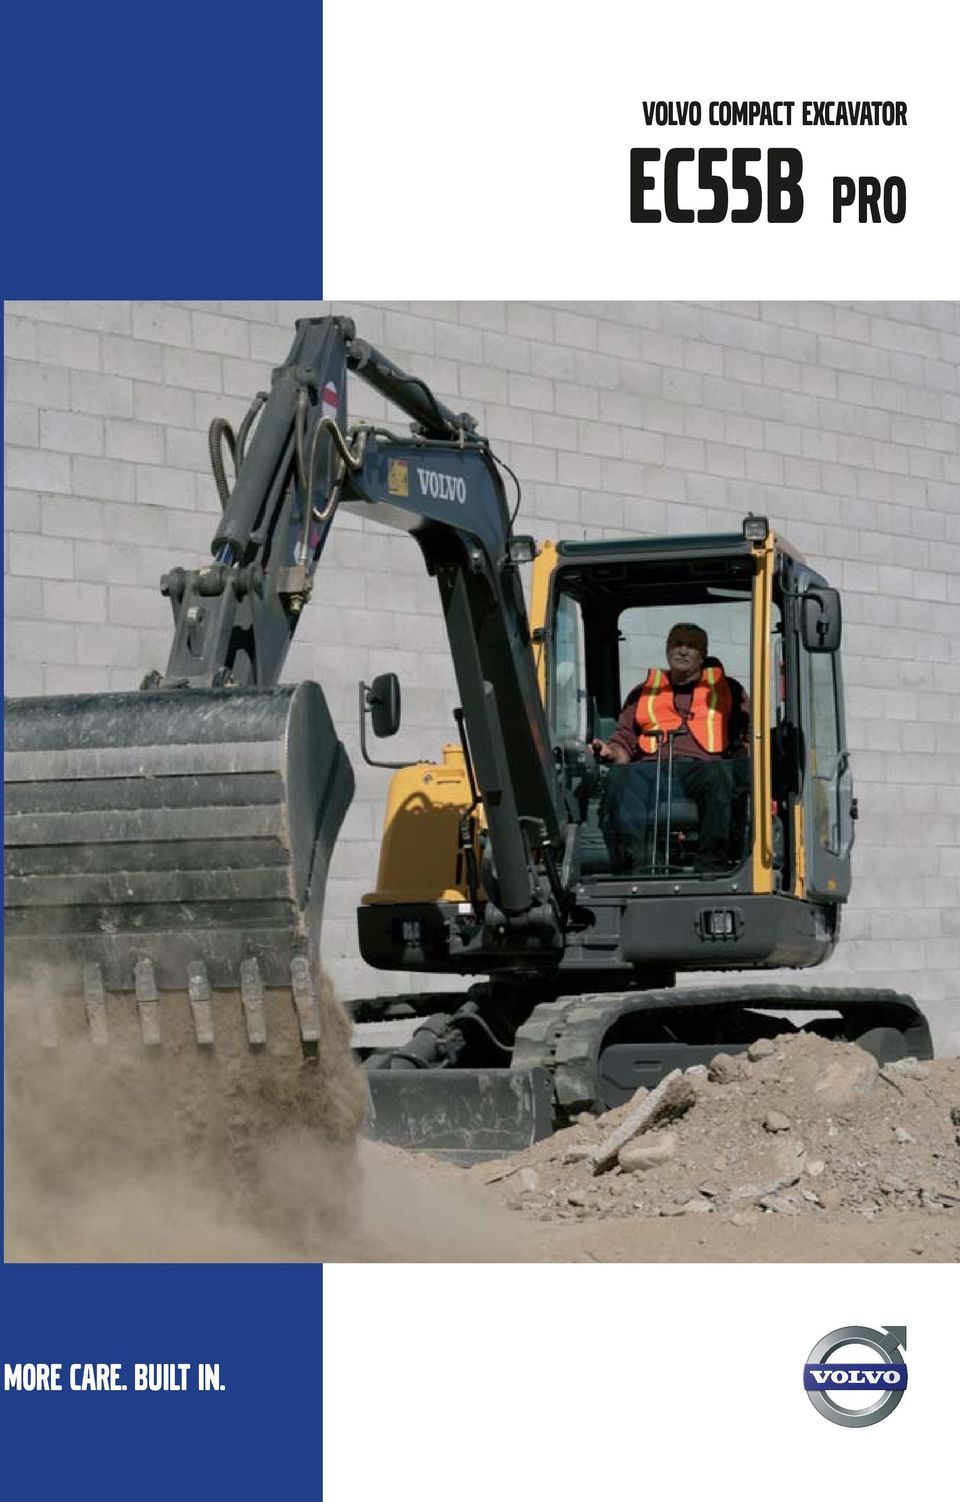 Fuse Box Volvo Ec55b Electrical Wiring Diagrams 2004 Xc90 Location More Care Built In Compact Excavator Pro Pdf